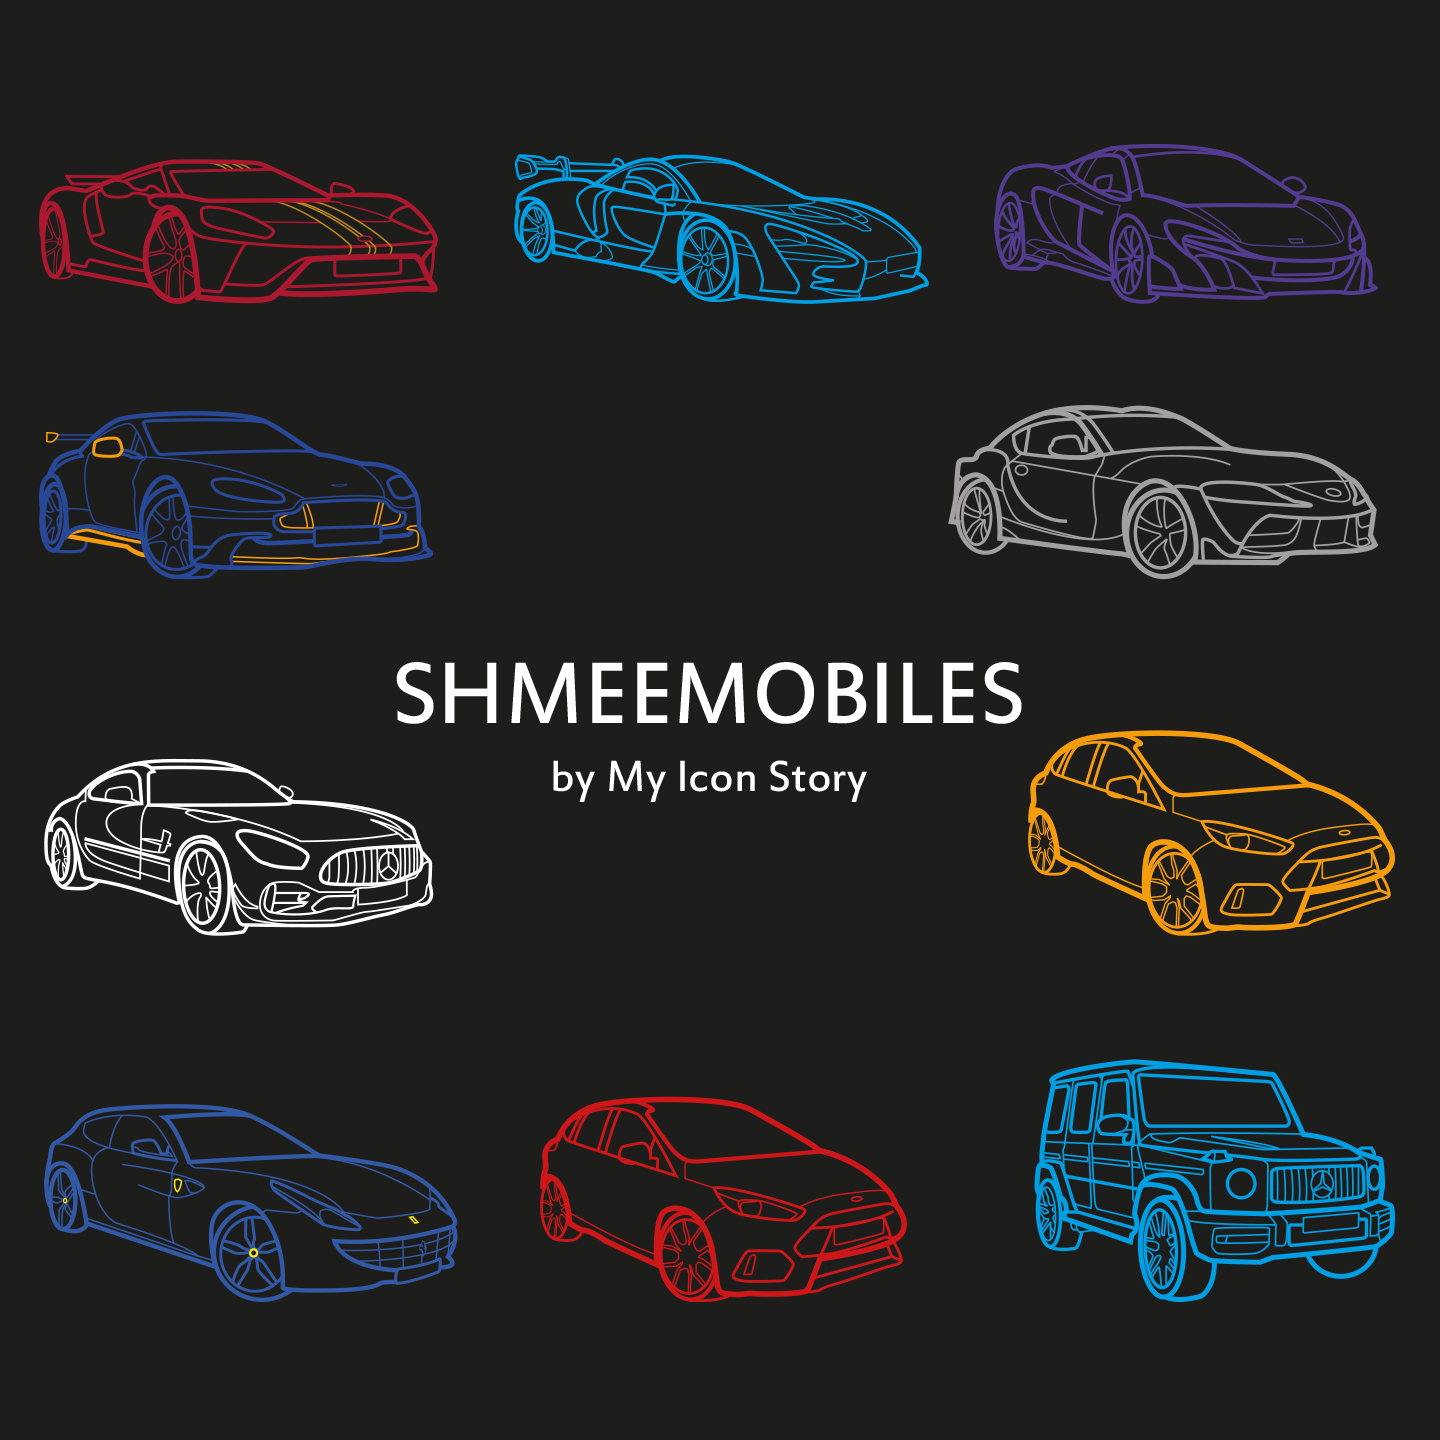 Supercar icons of Shmee150